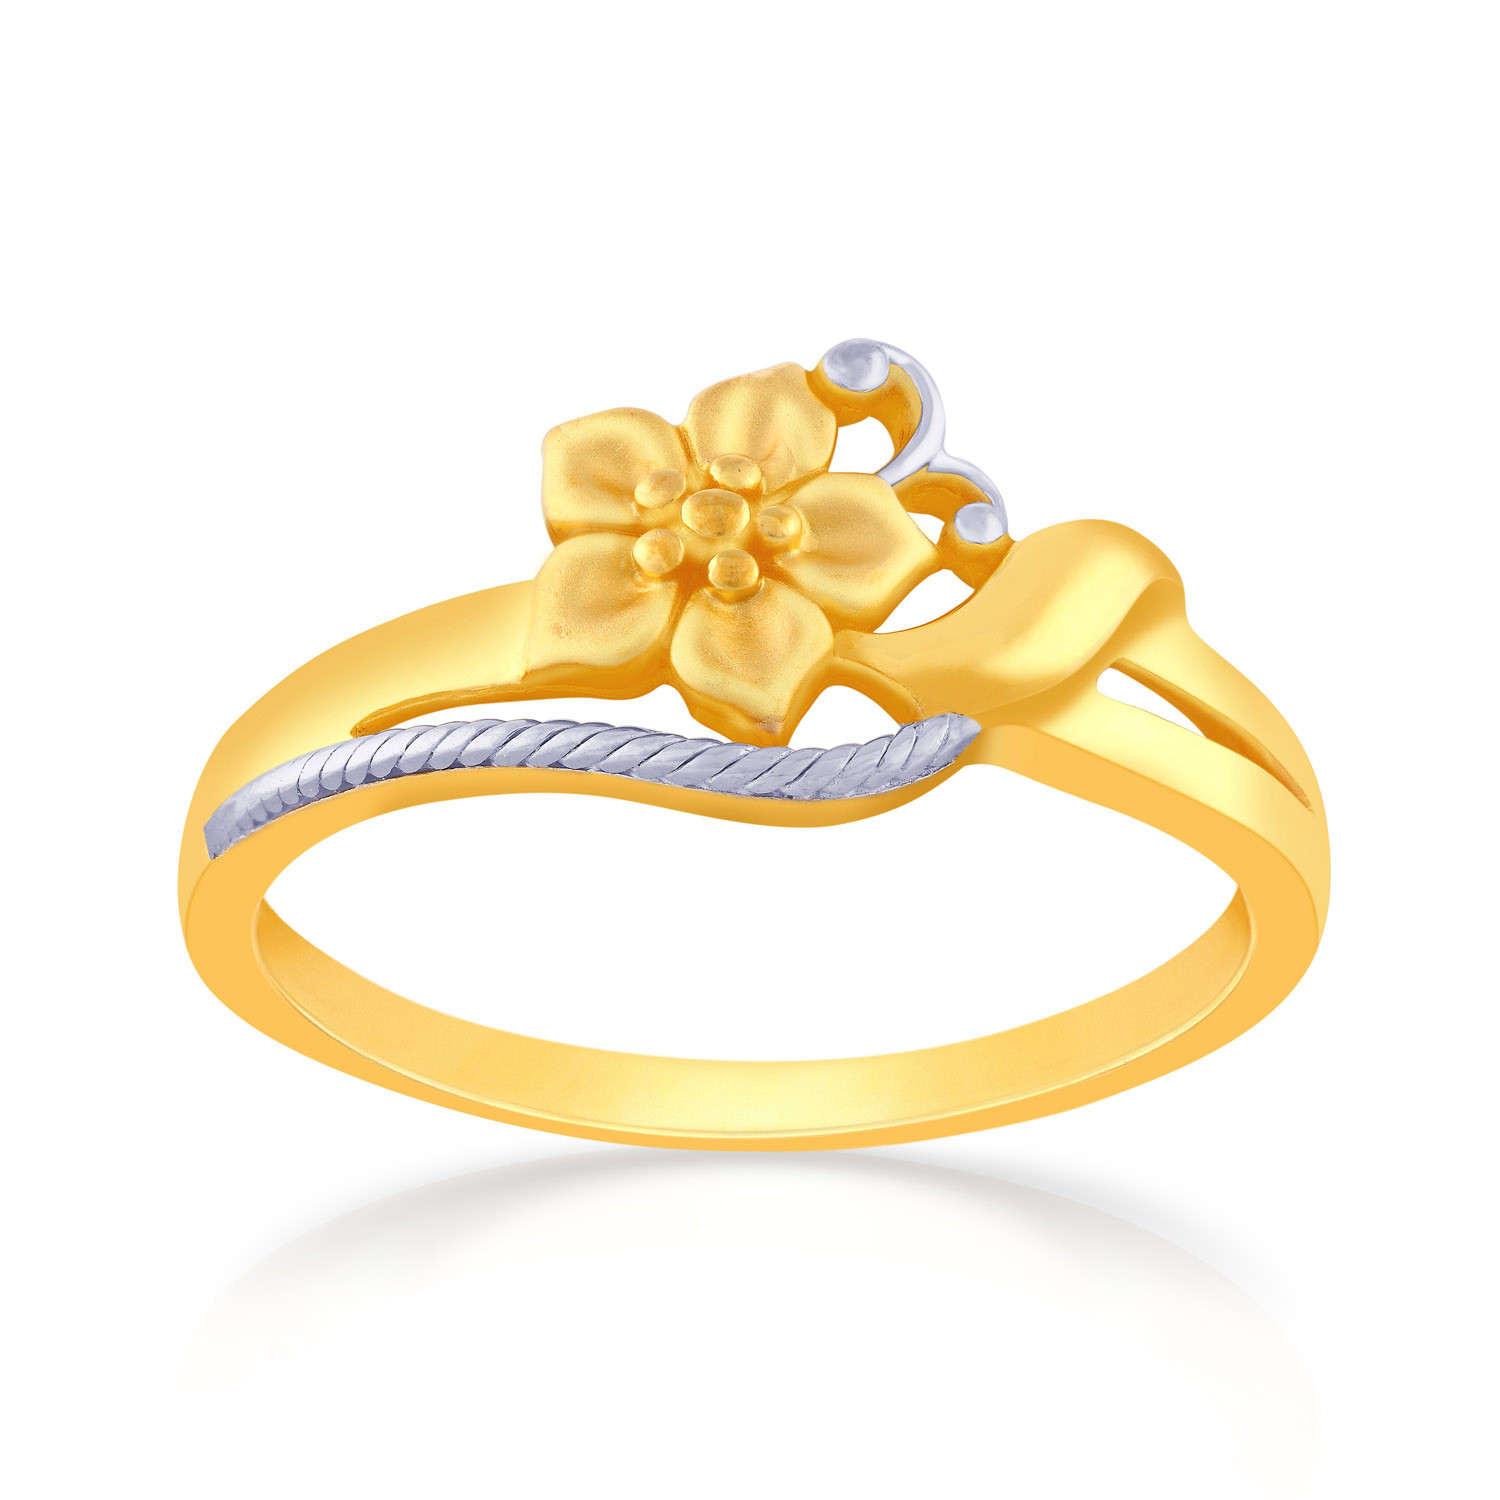 Gold Finger Ring Images With Price